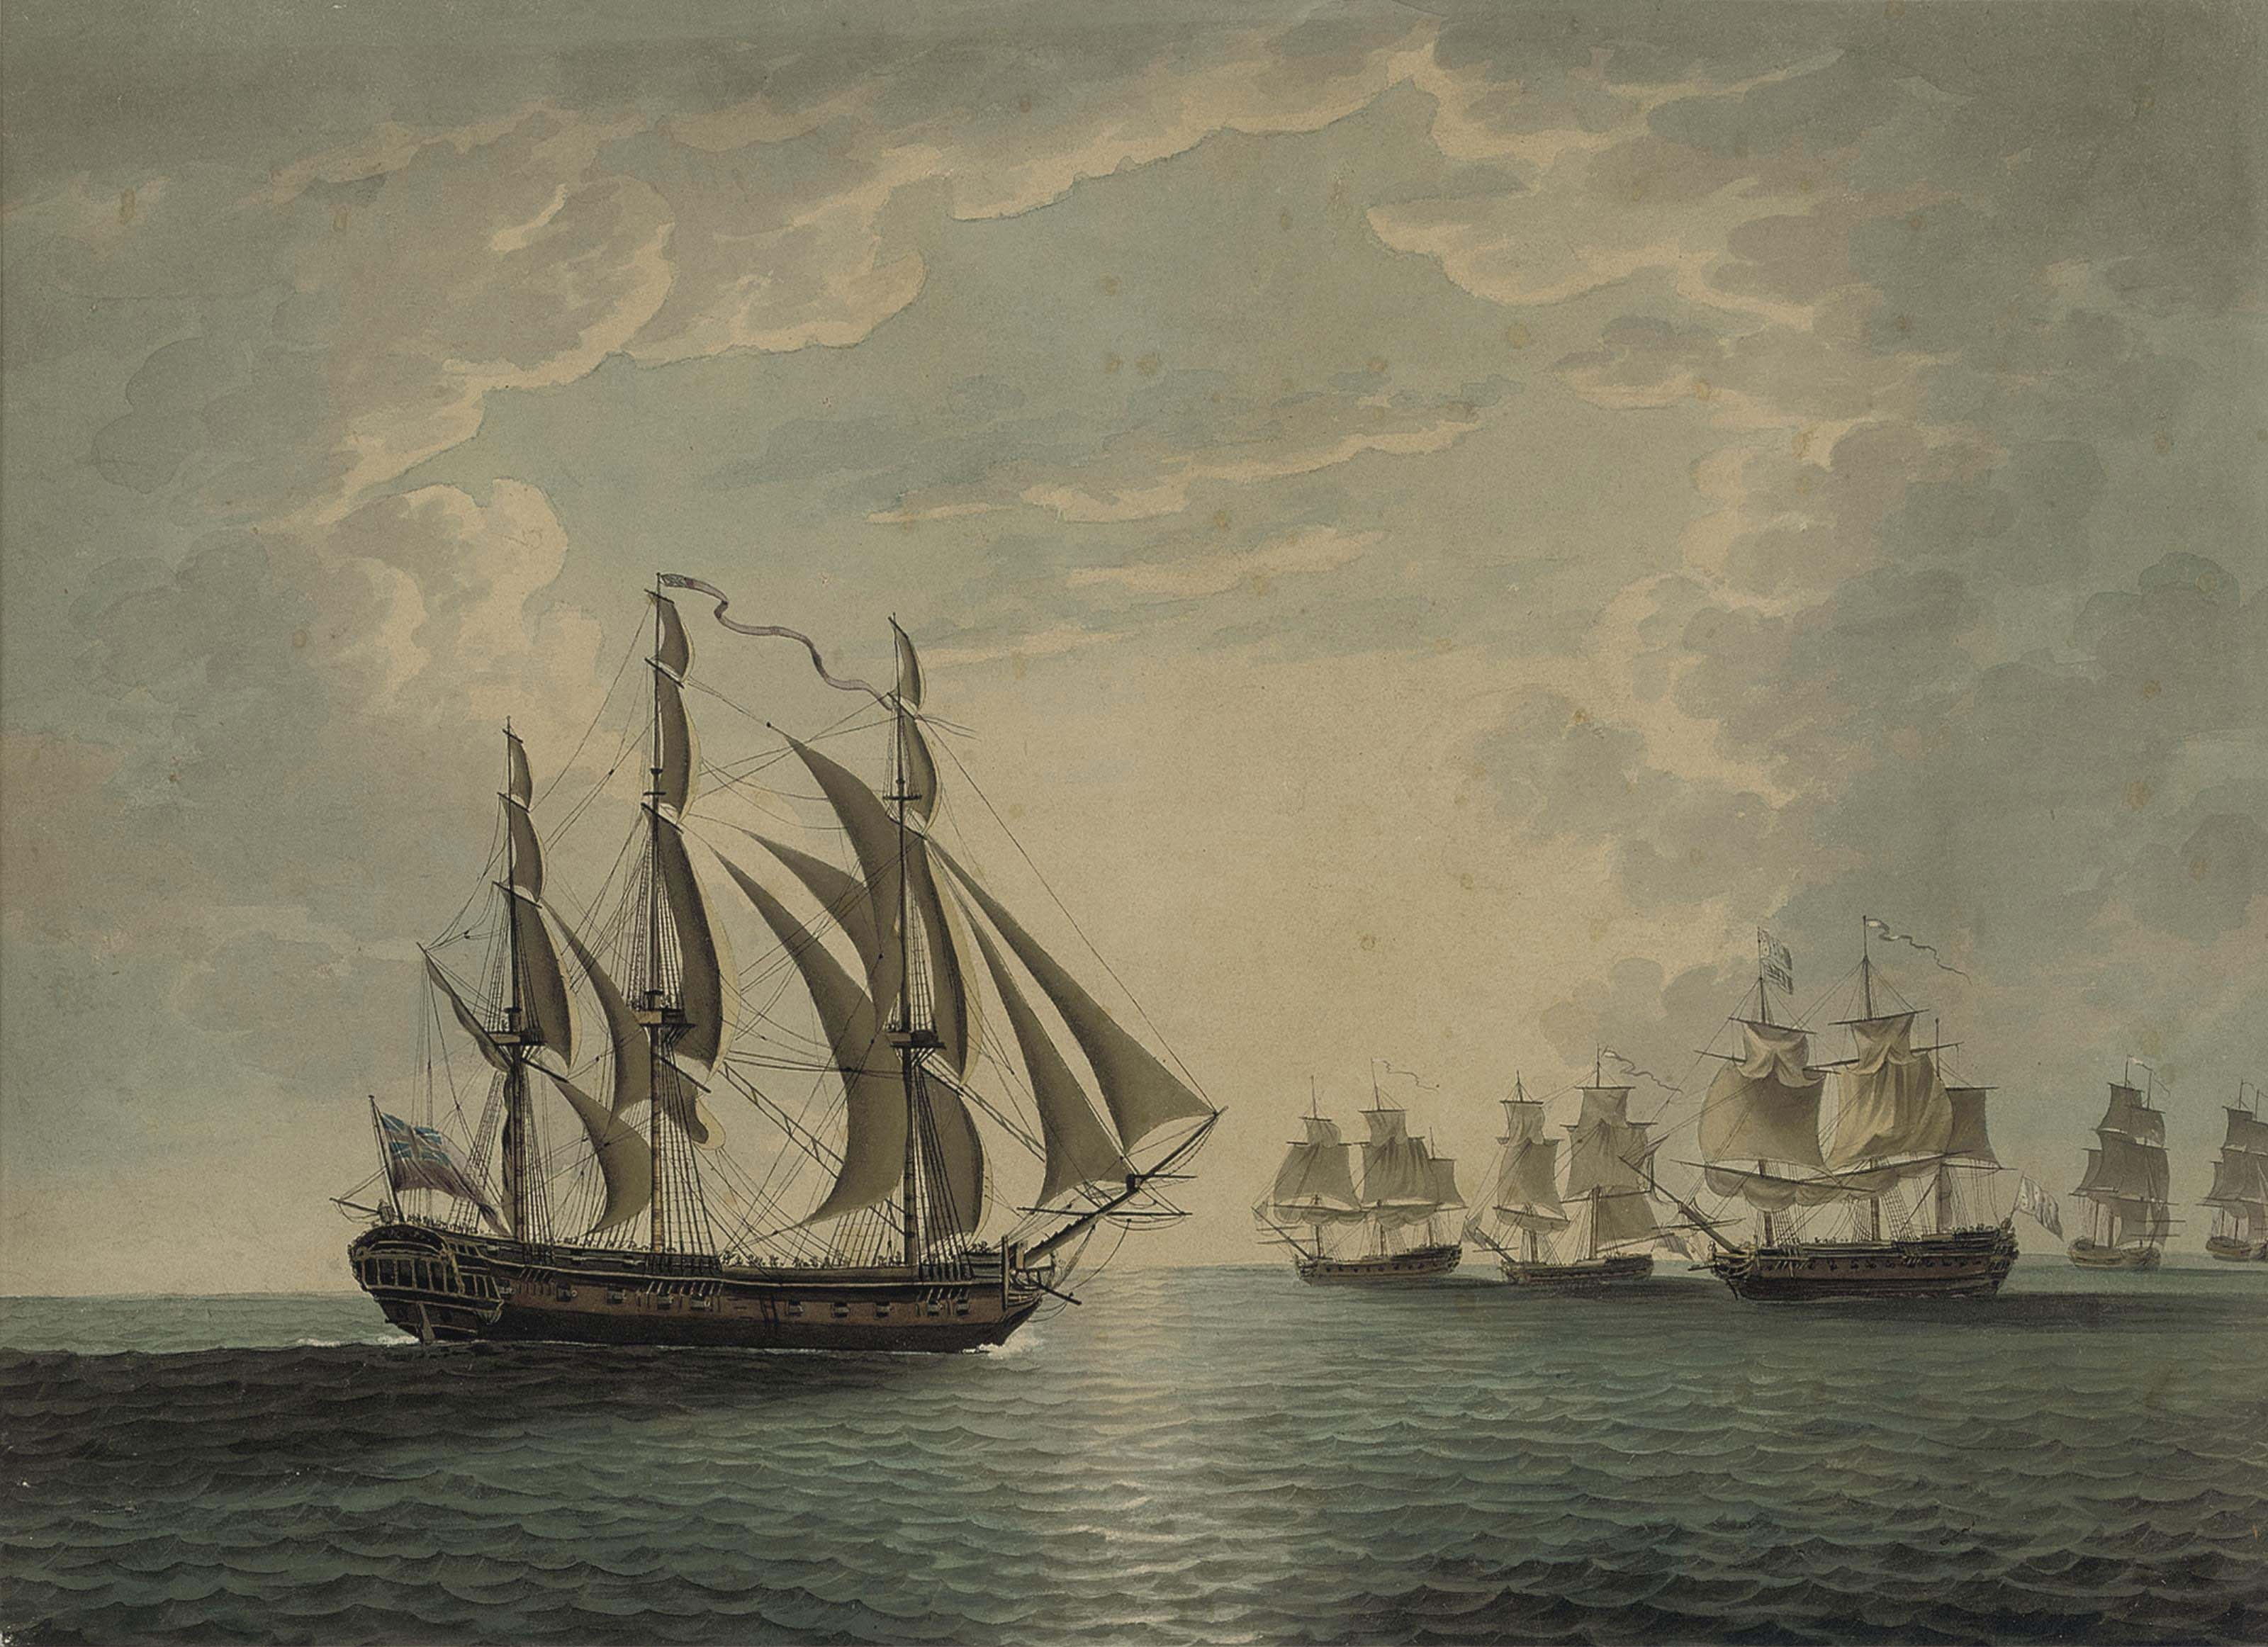 H.M.S. Mediator about to attack an enemy convoy off Cape Ortegal, 12th December 1782